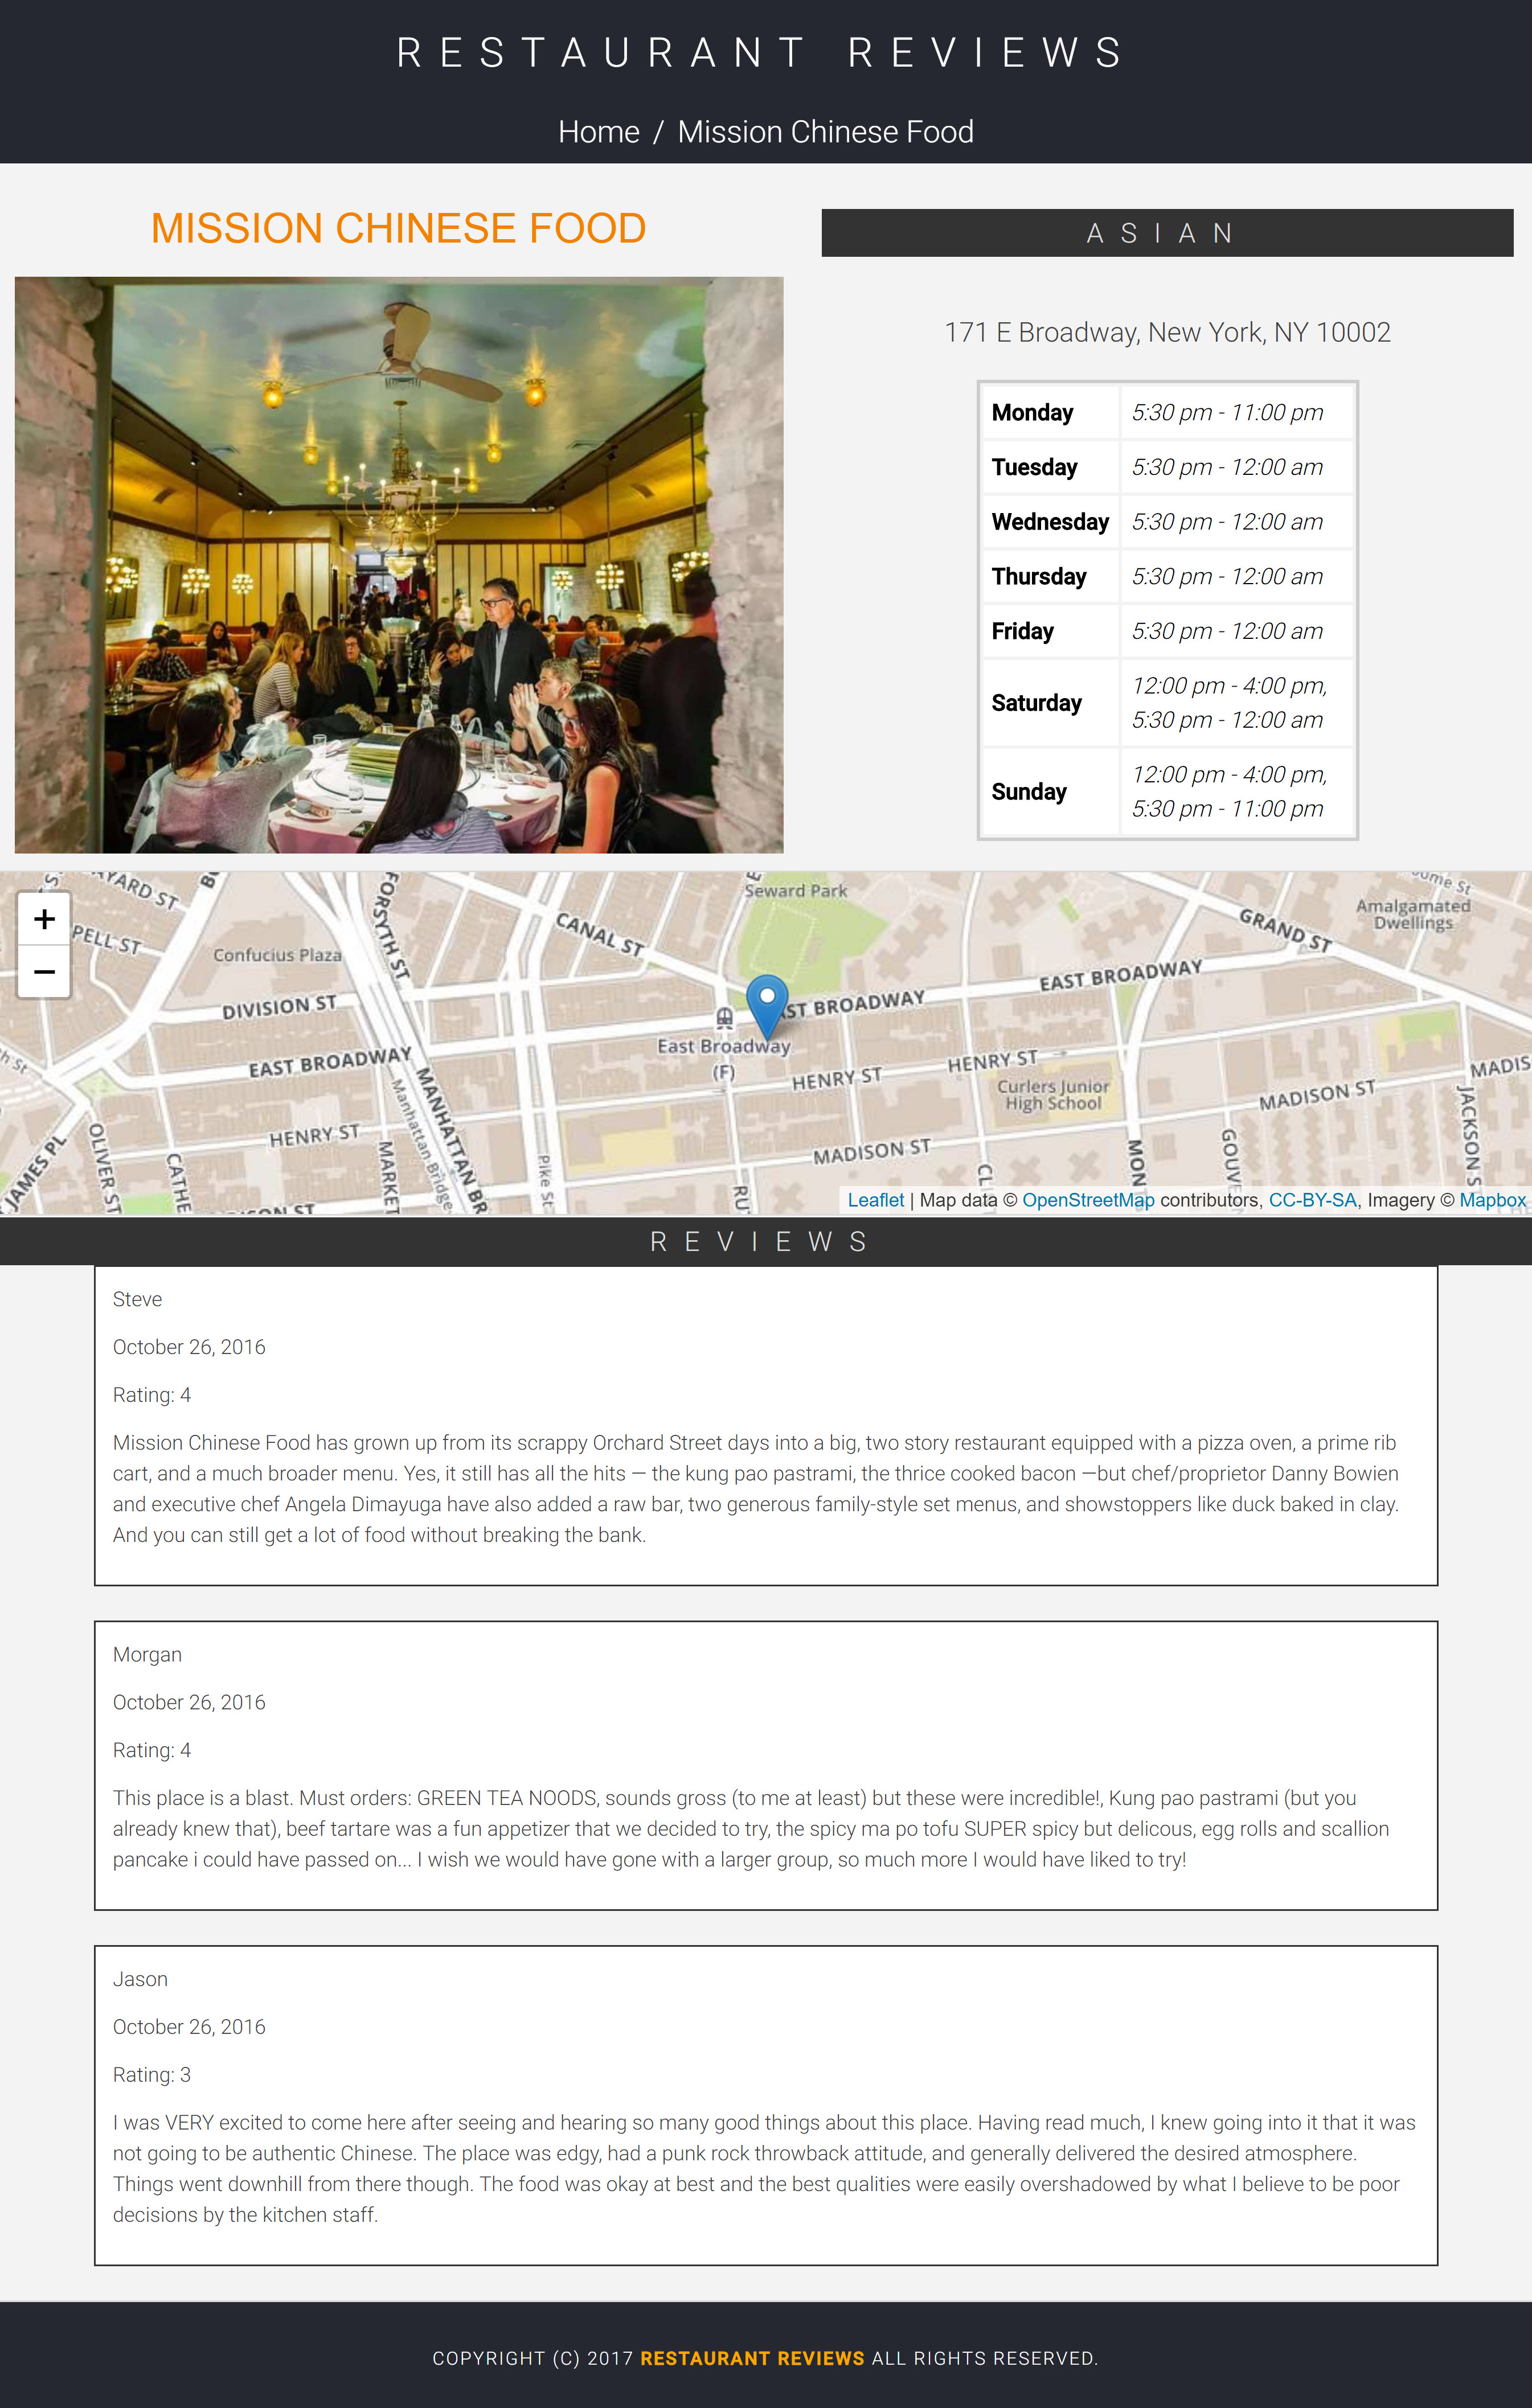 Details Page (Large Size)